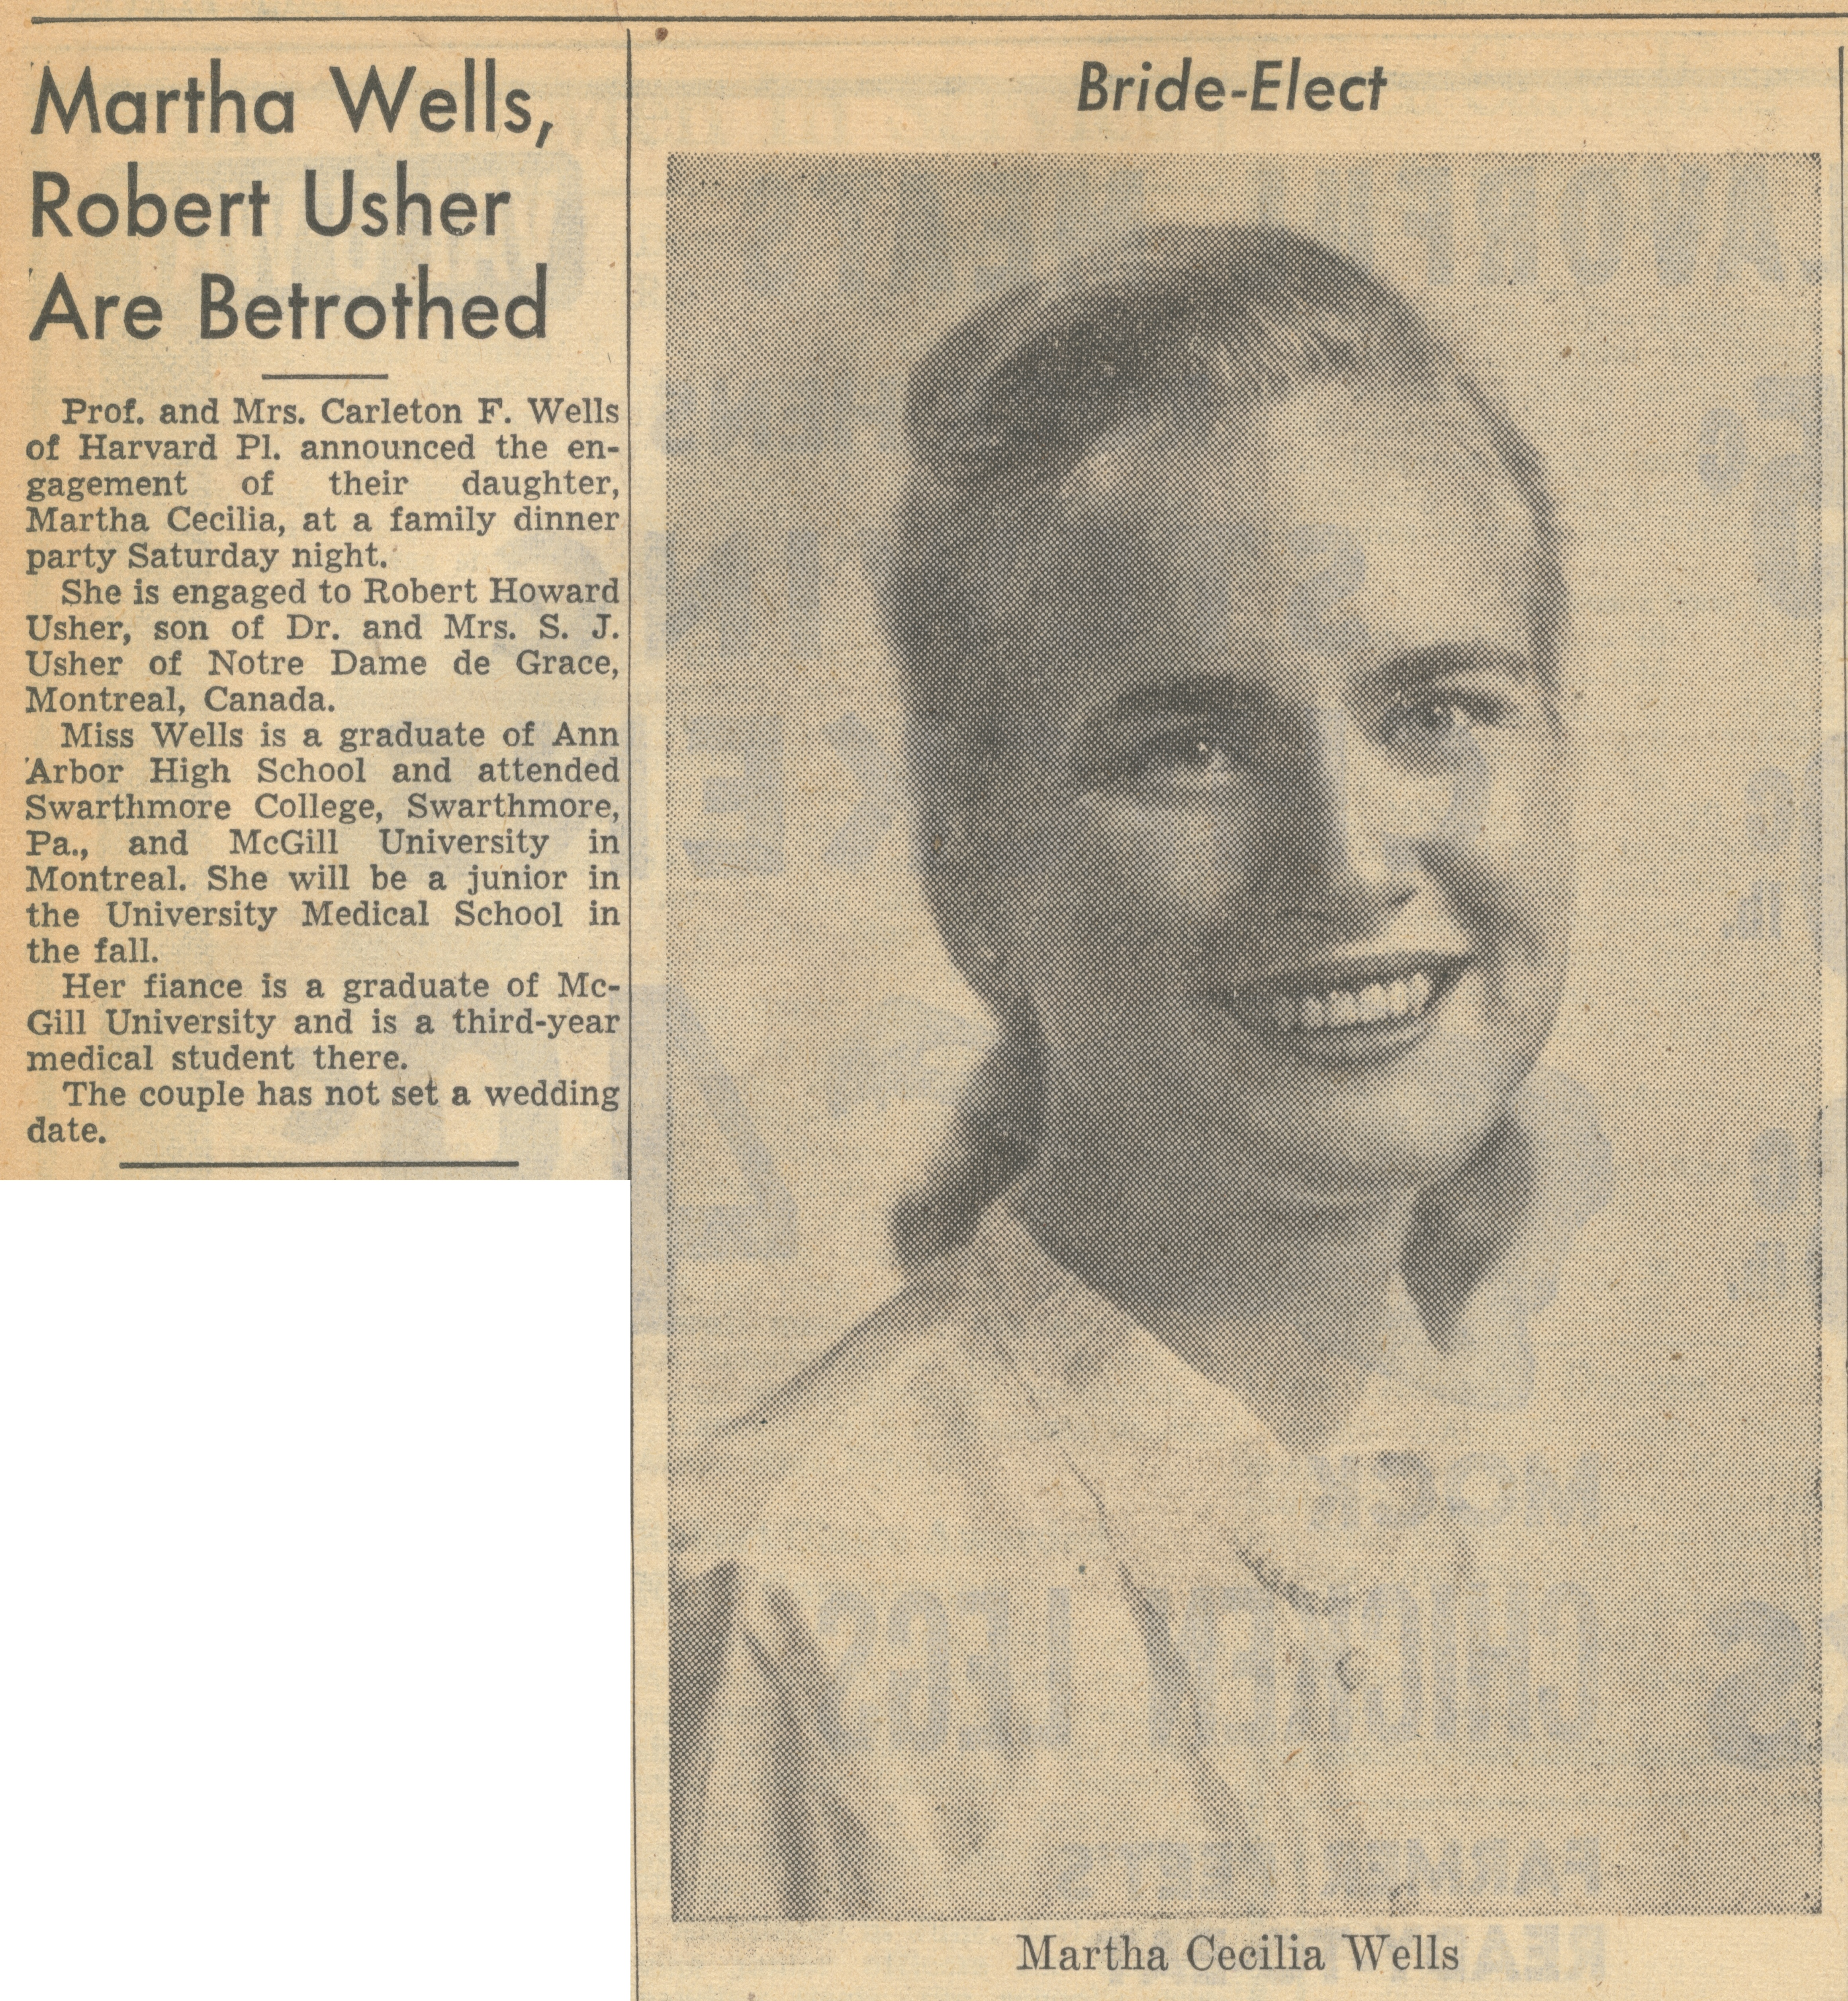 Martha Wells, Robert Usher Are Betrothed image